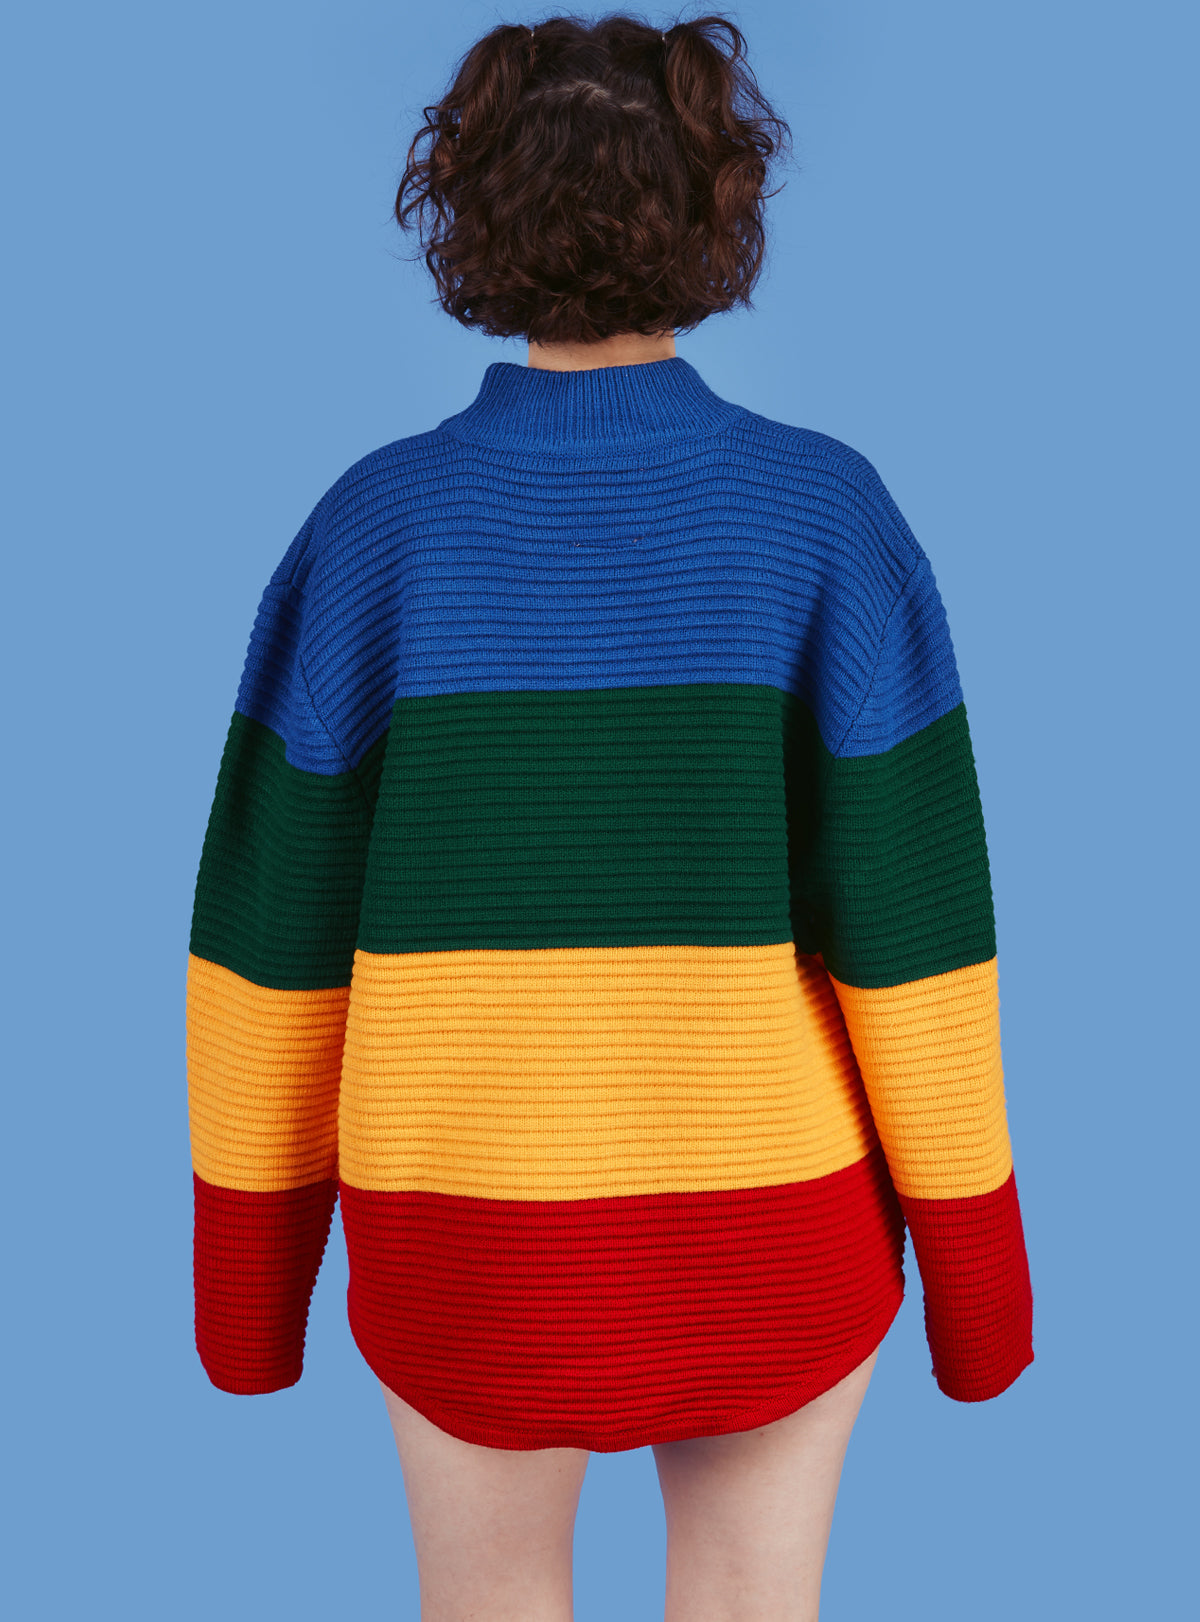 Crayola Sweater